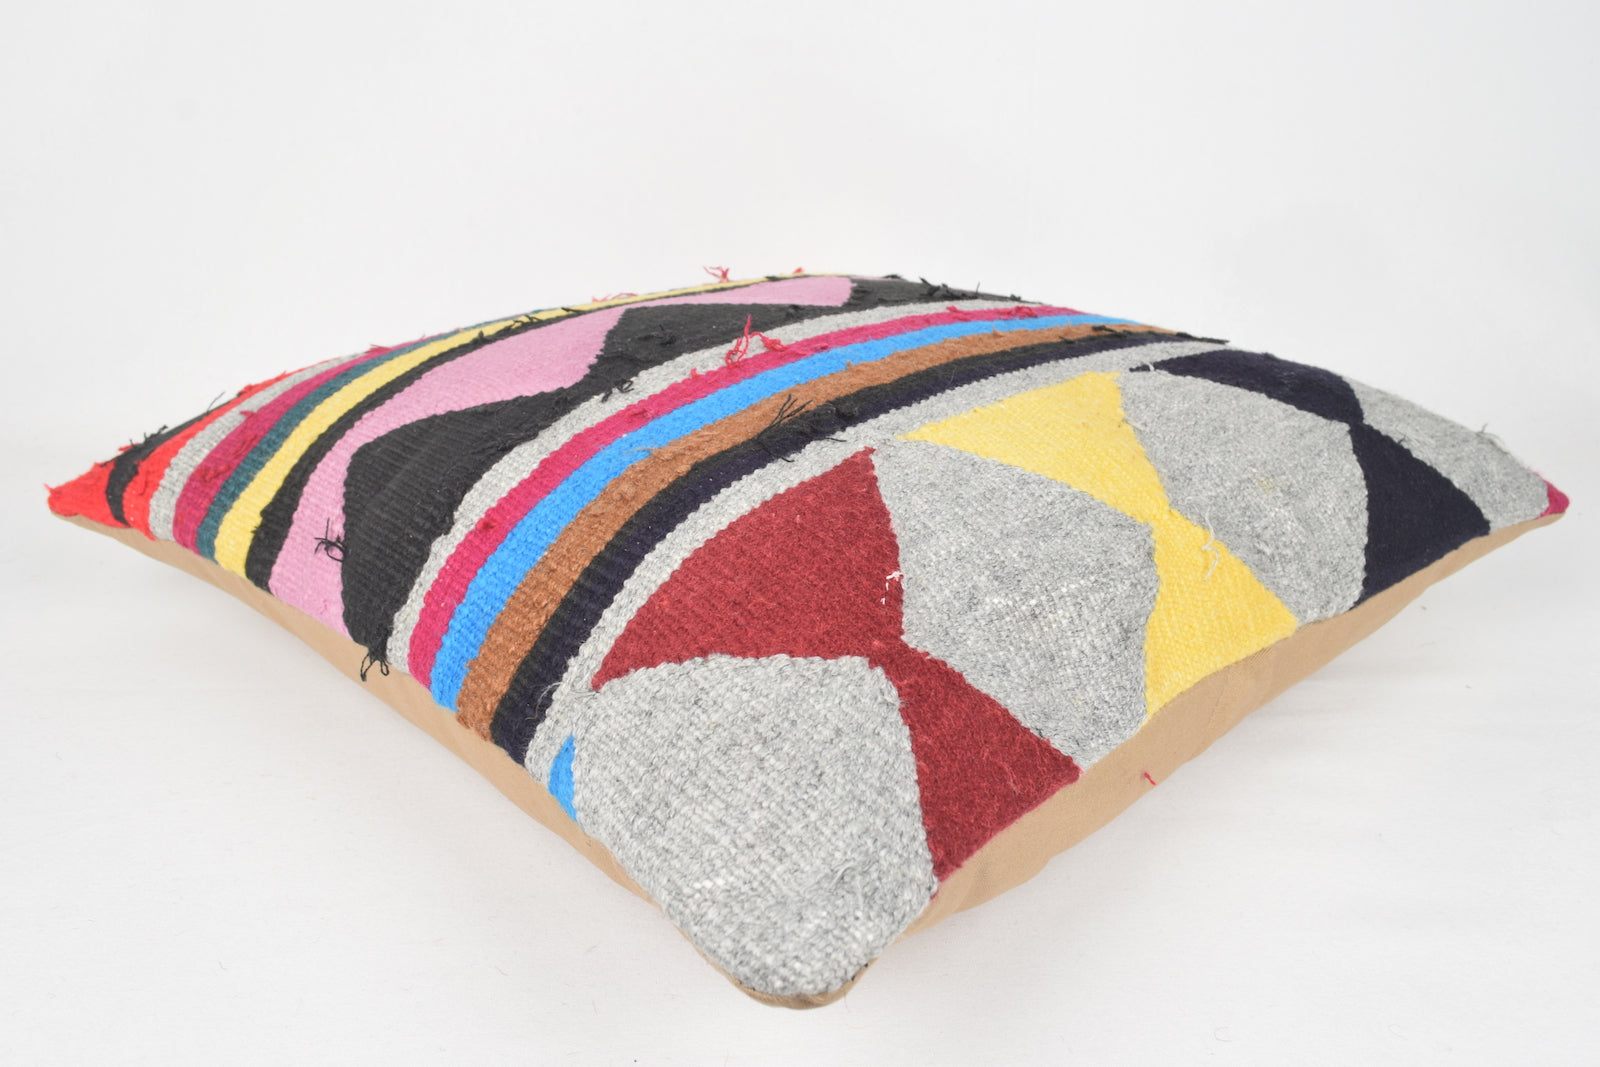 Vintage Kilim Basri Cushion